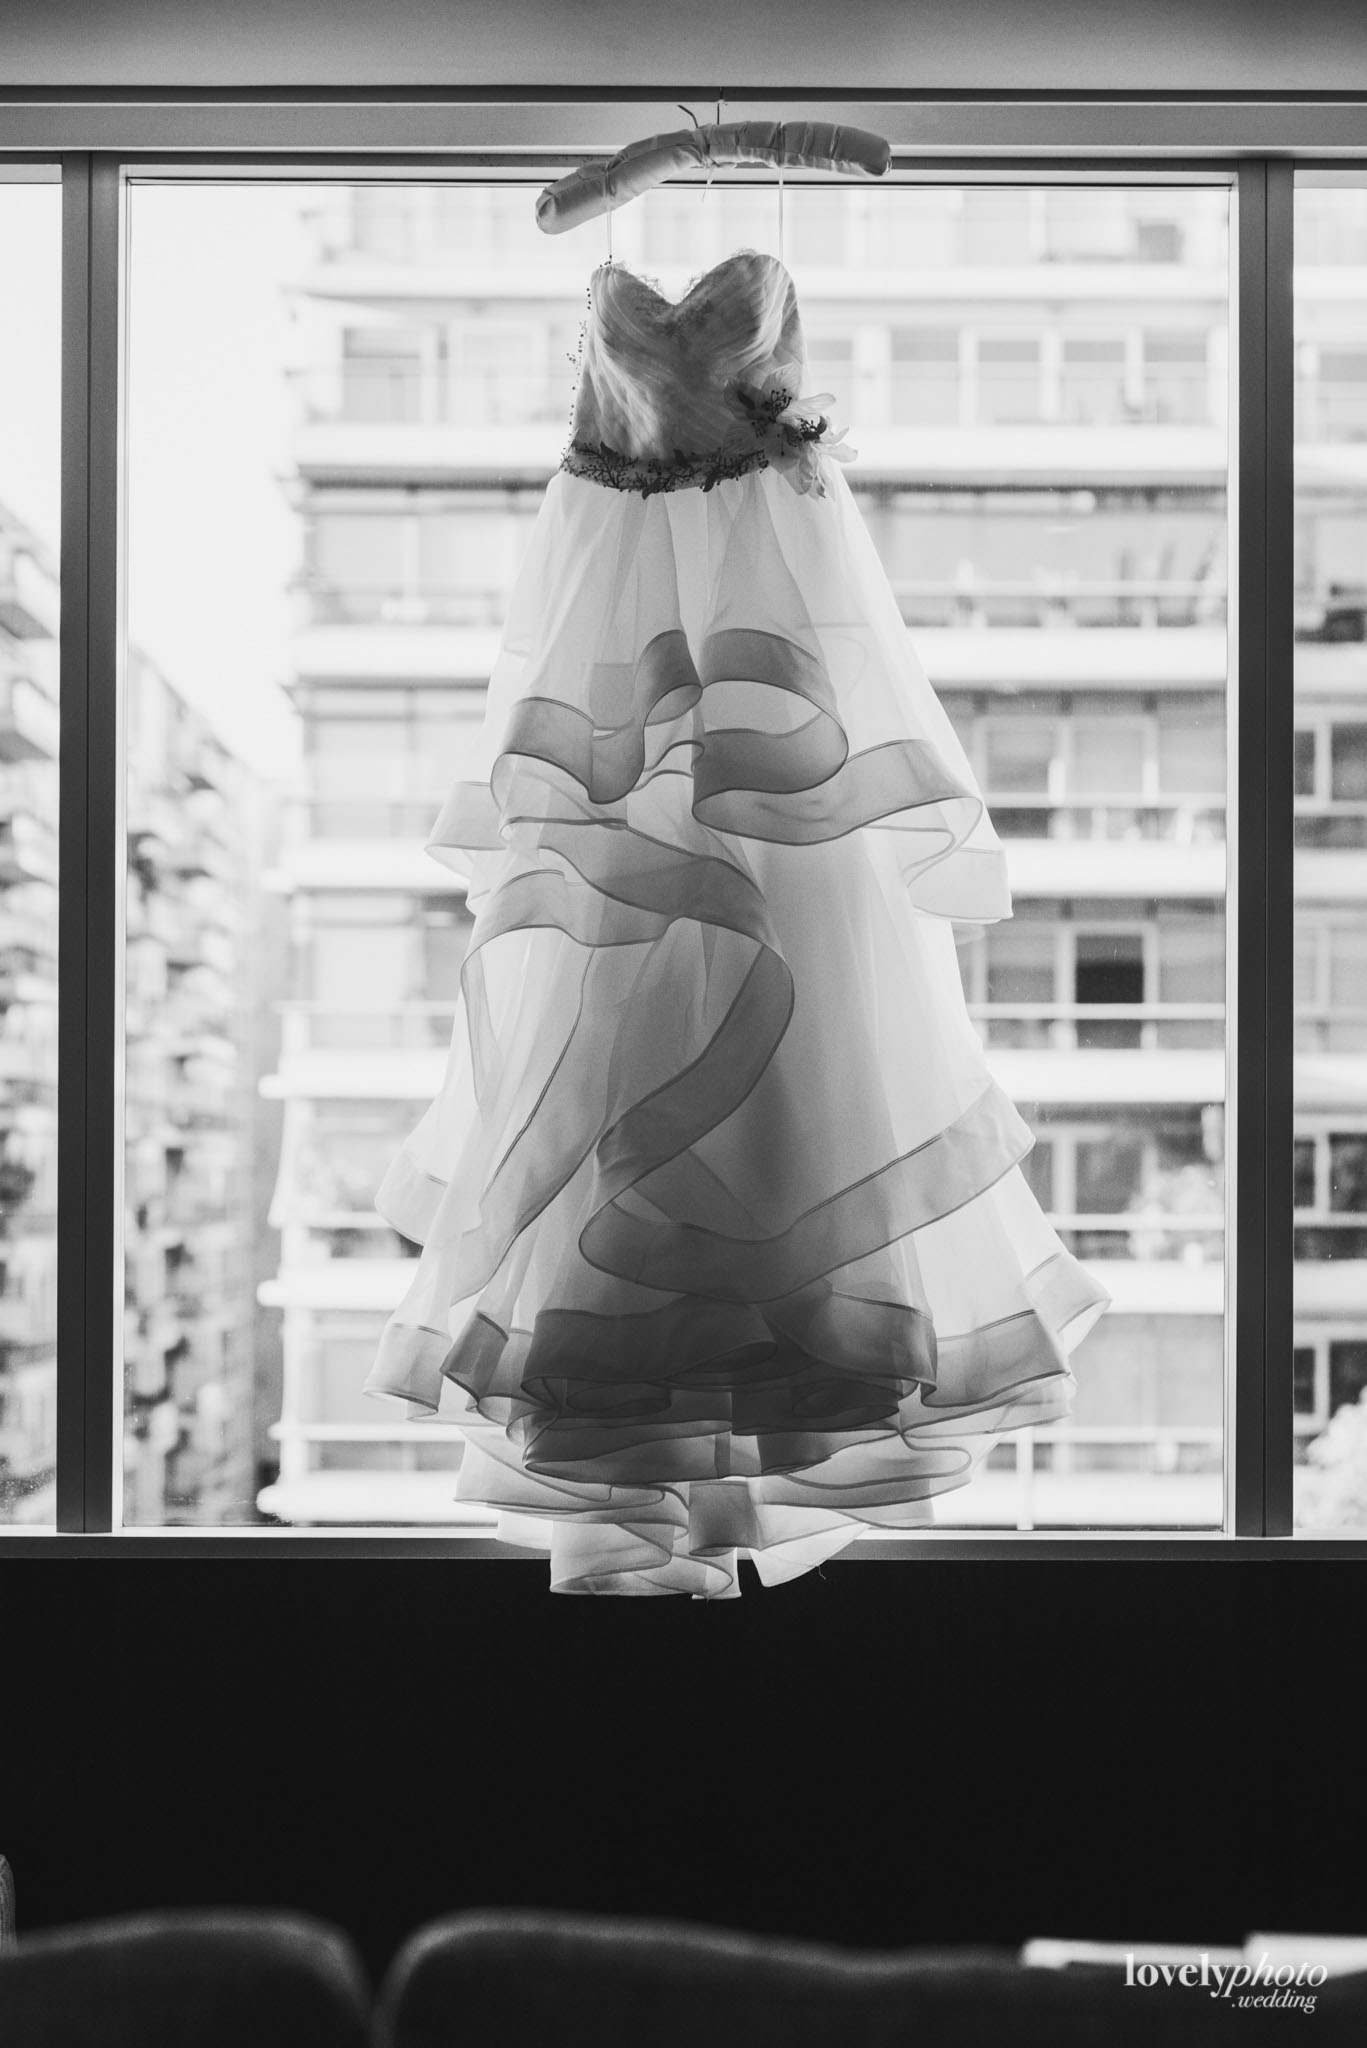 fotografo, bodas, casamiento, casamientos, wedding photographer, elopement, engagement, buenos aires Lovely Photo